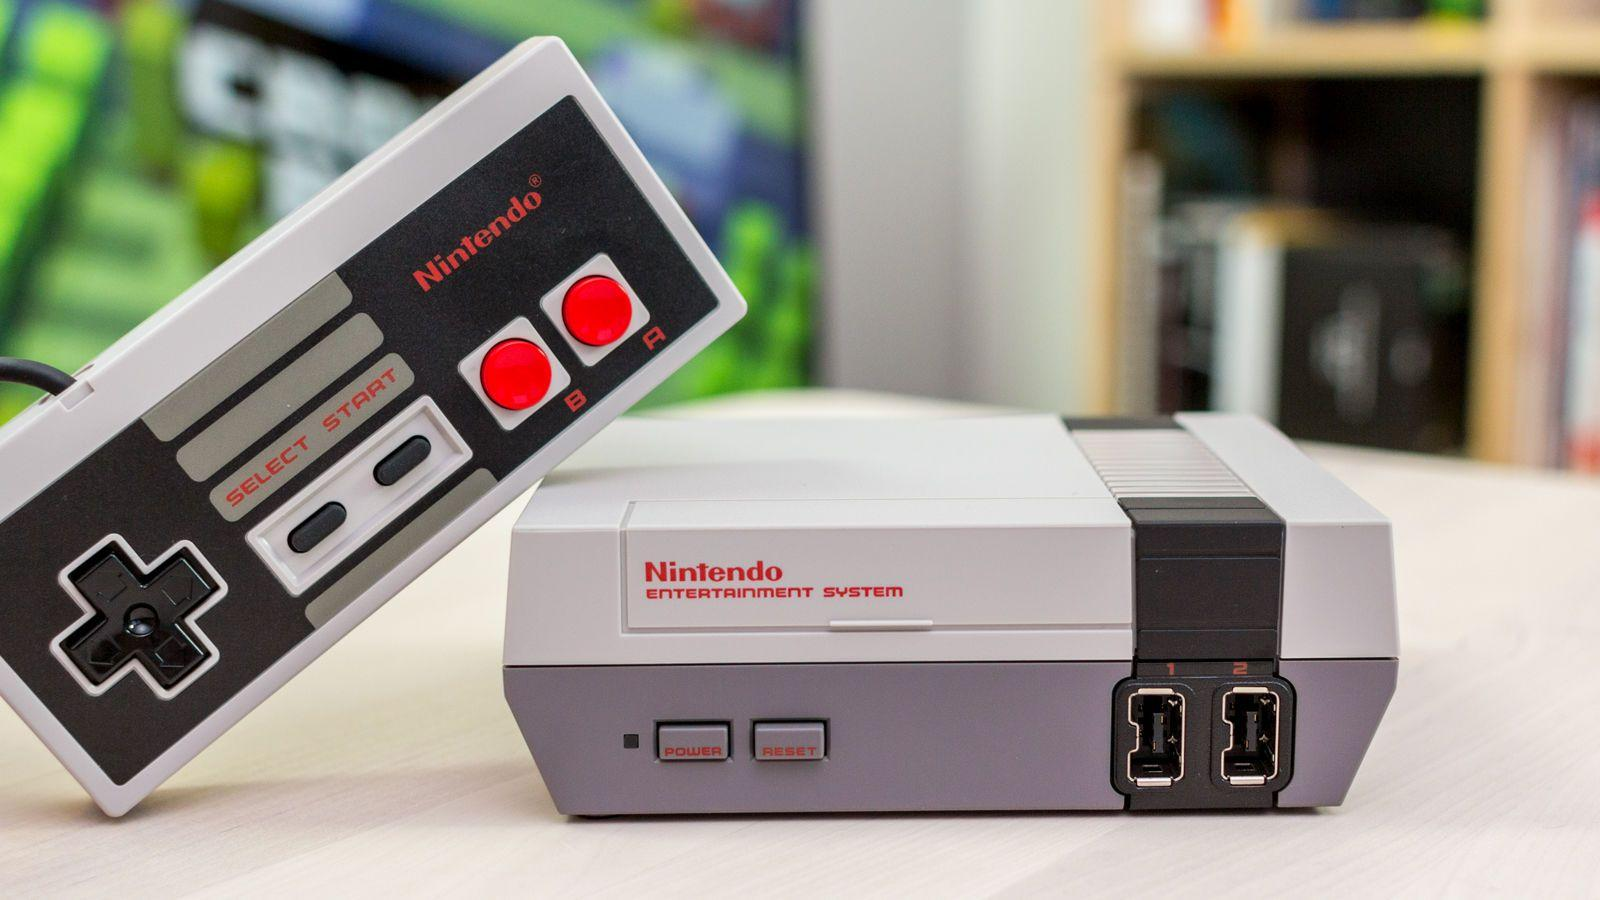 NES Classic Review: A Tiny Box Packed with Nintendo Nostalgia for